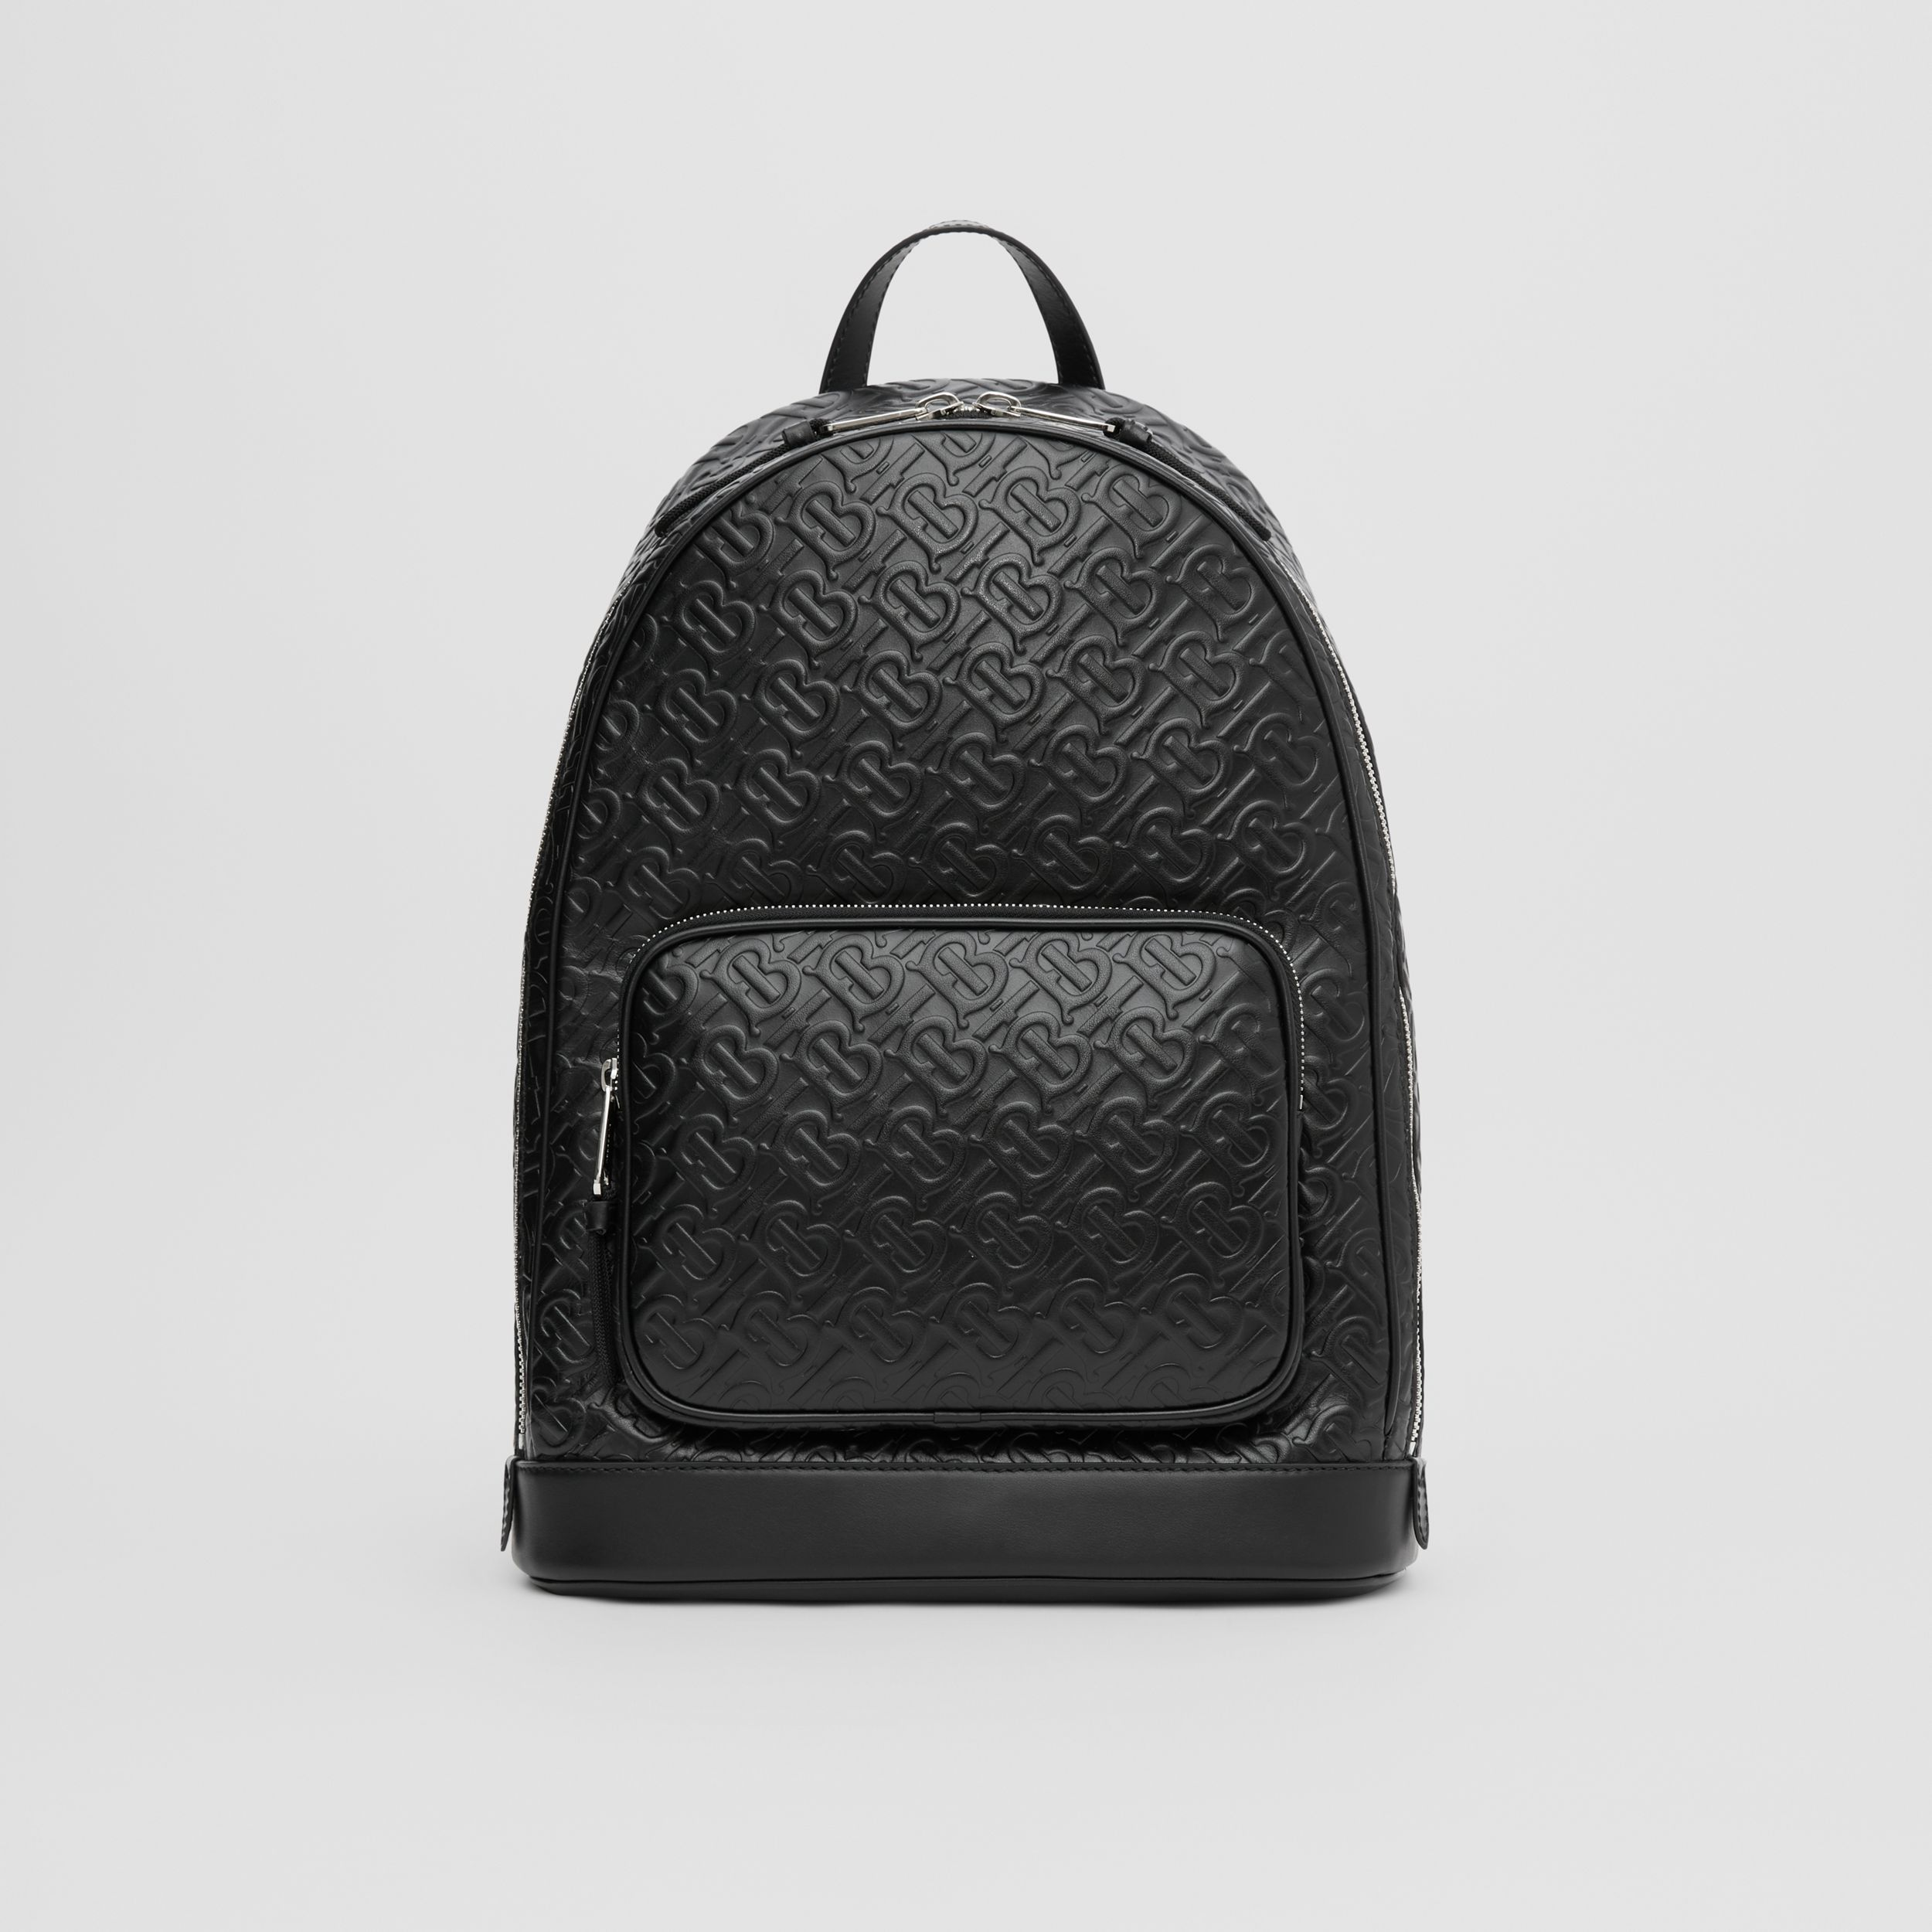 Monogram Leather Backpack in Black - Men | Burberry Canada - 1